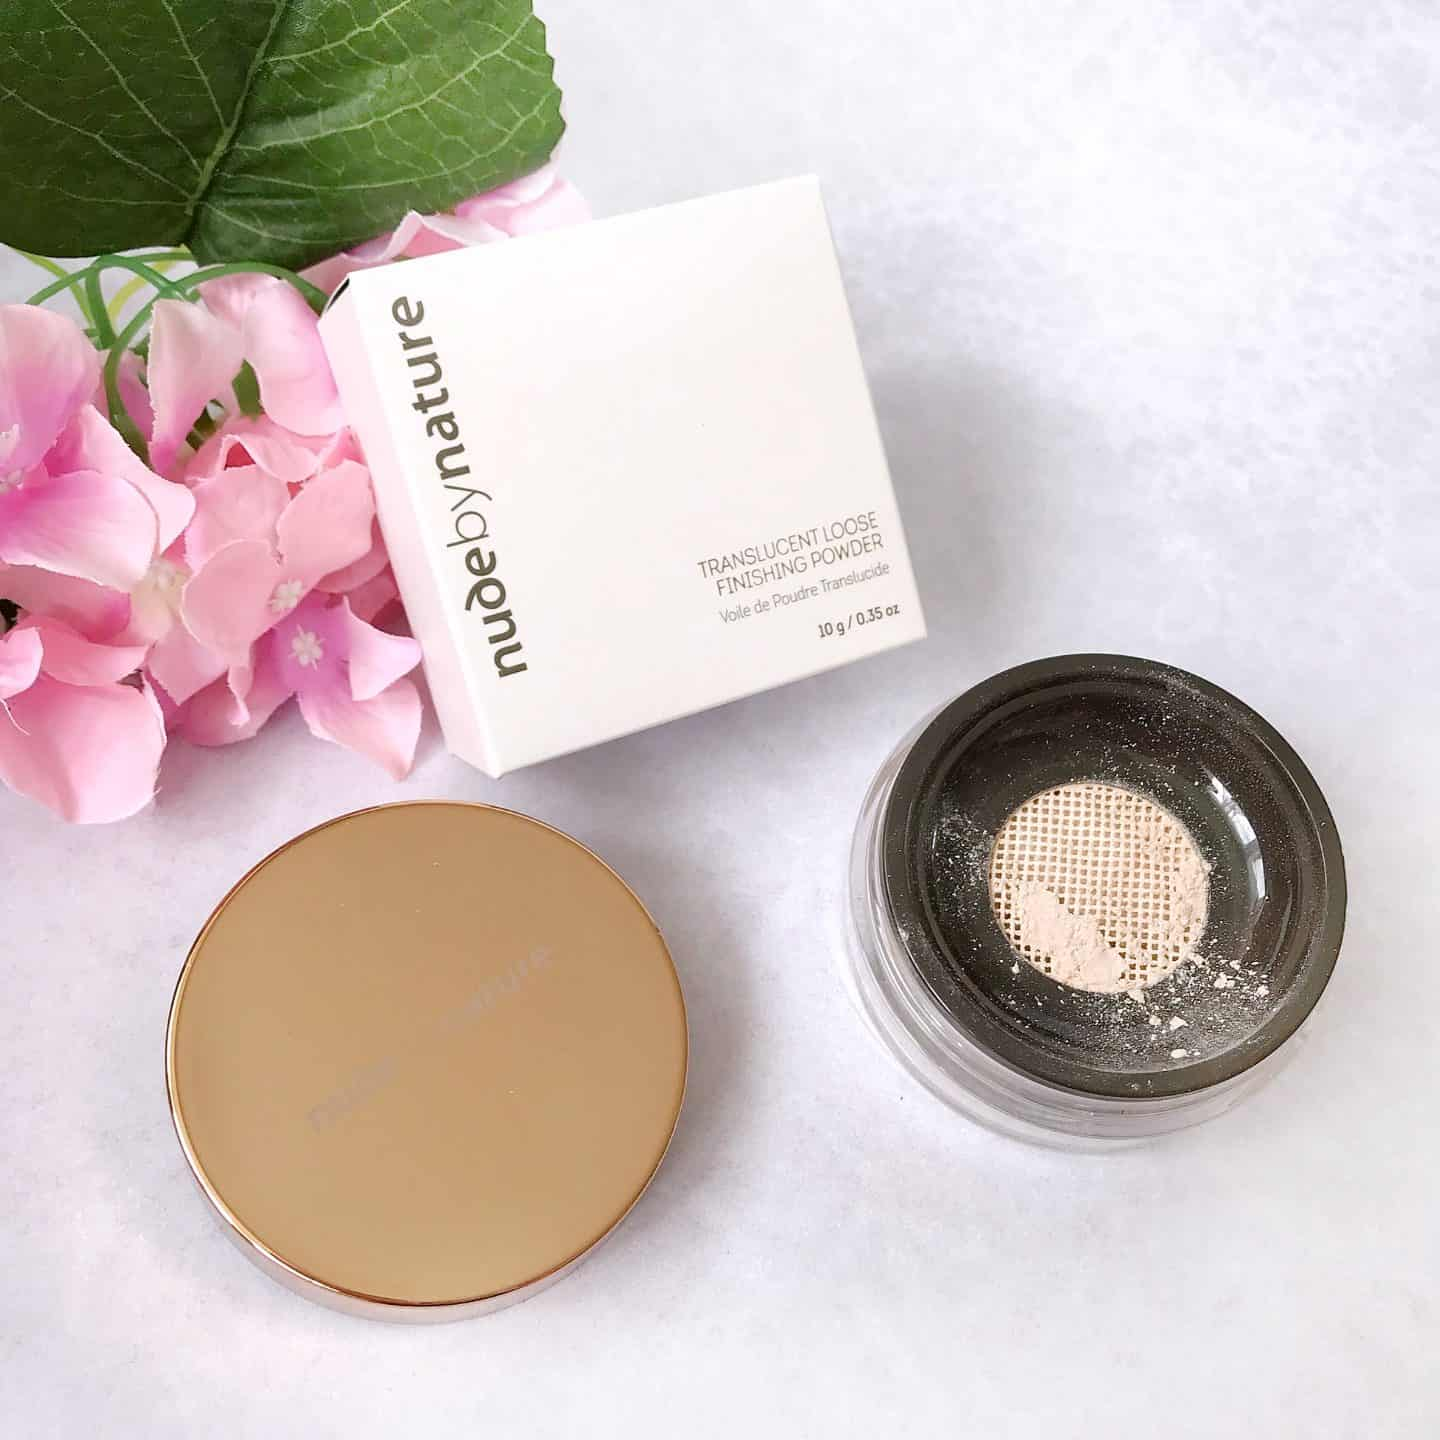 Nude by Nature Translucent Loose Finishing Powder Review